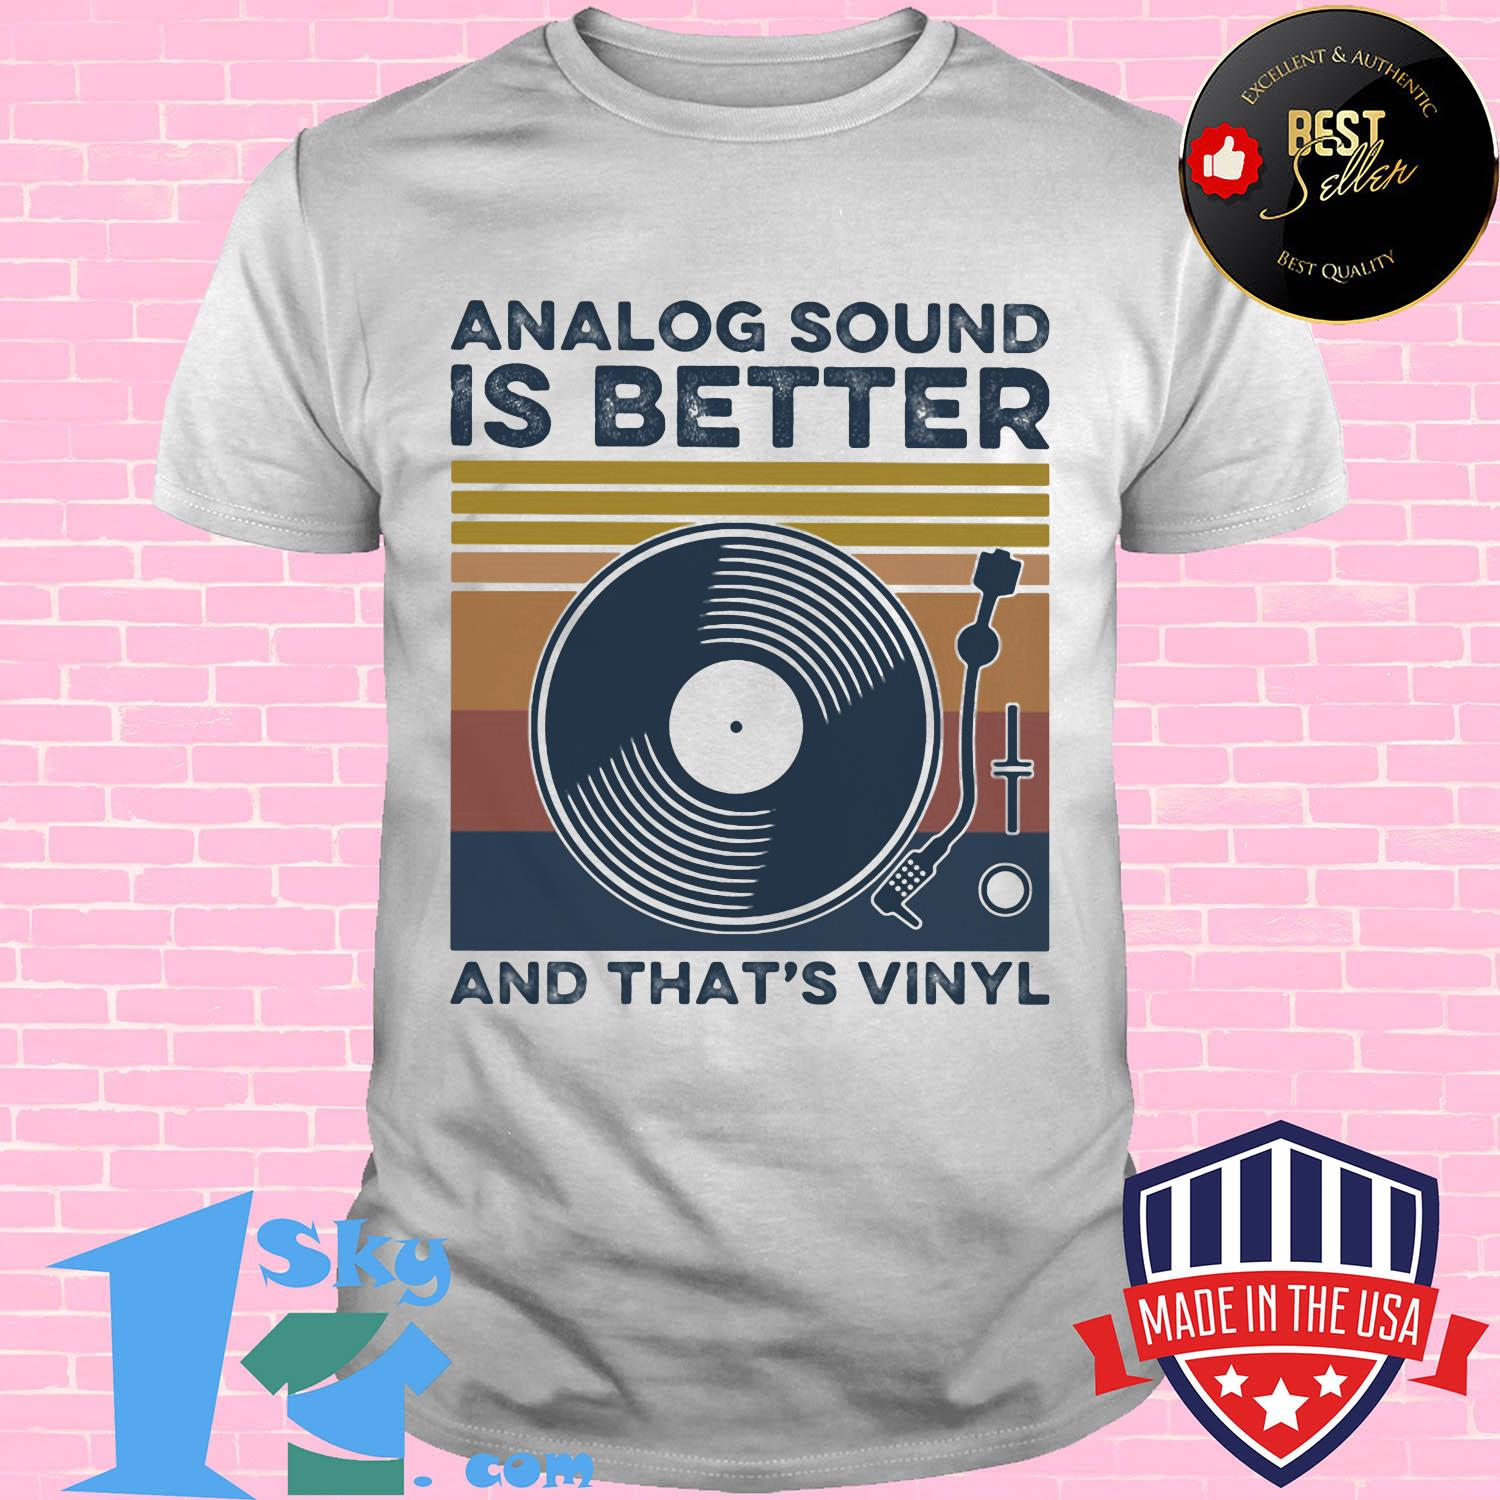 Analog Sound is better and that's vinyl vintage shirt